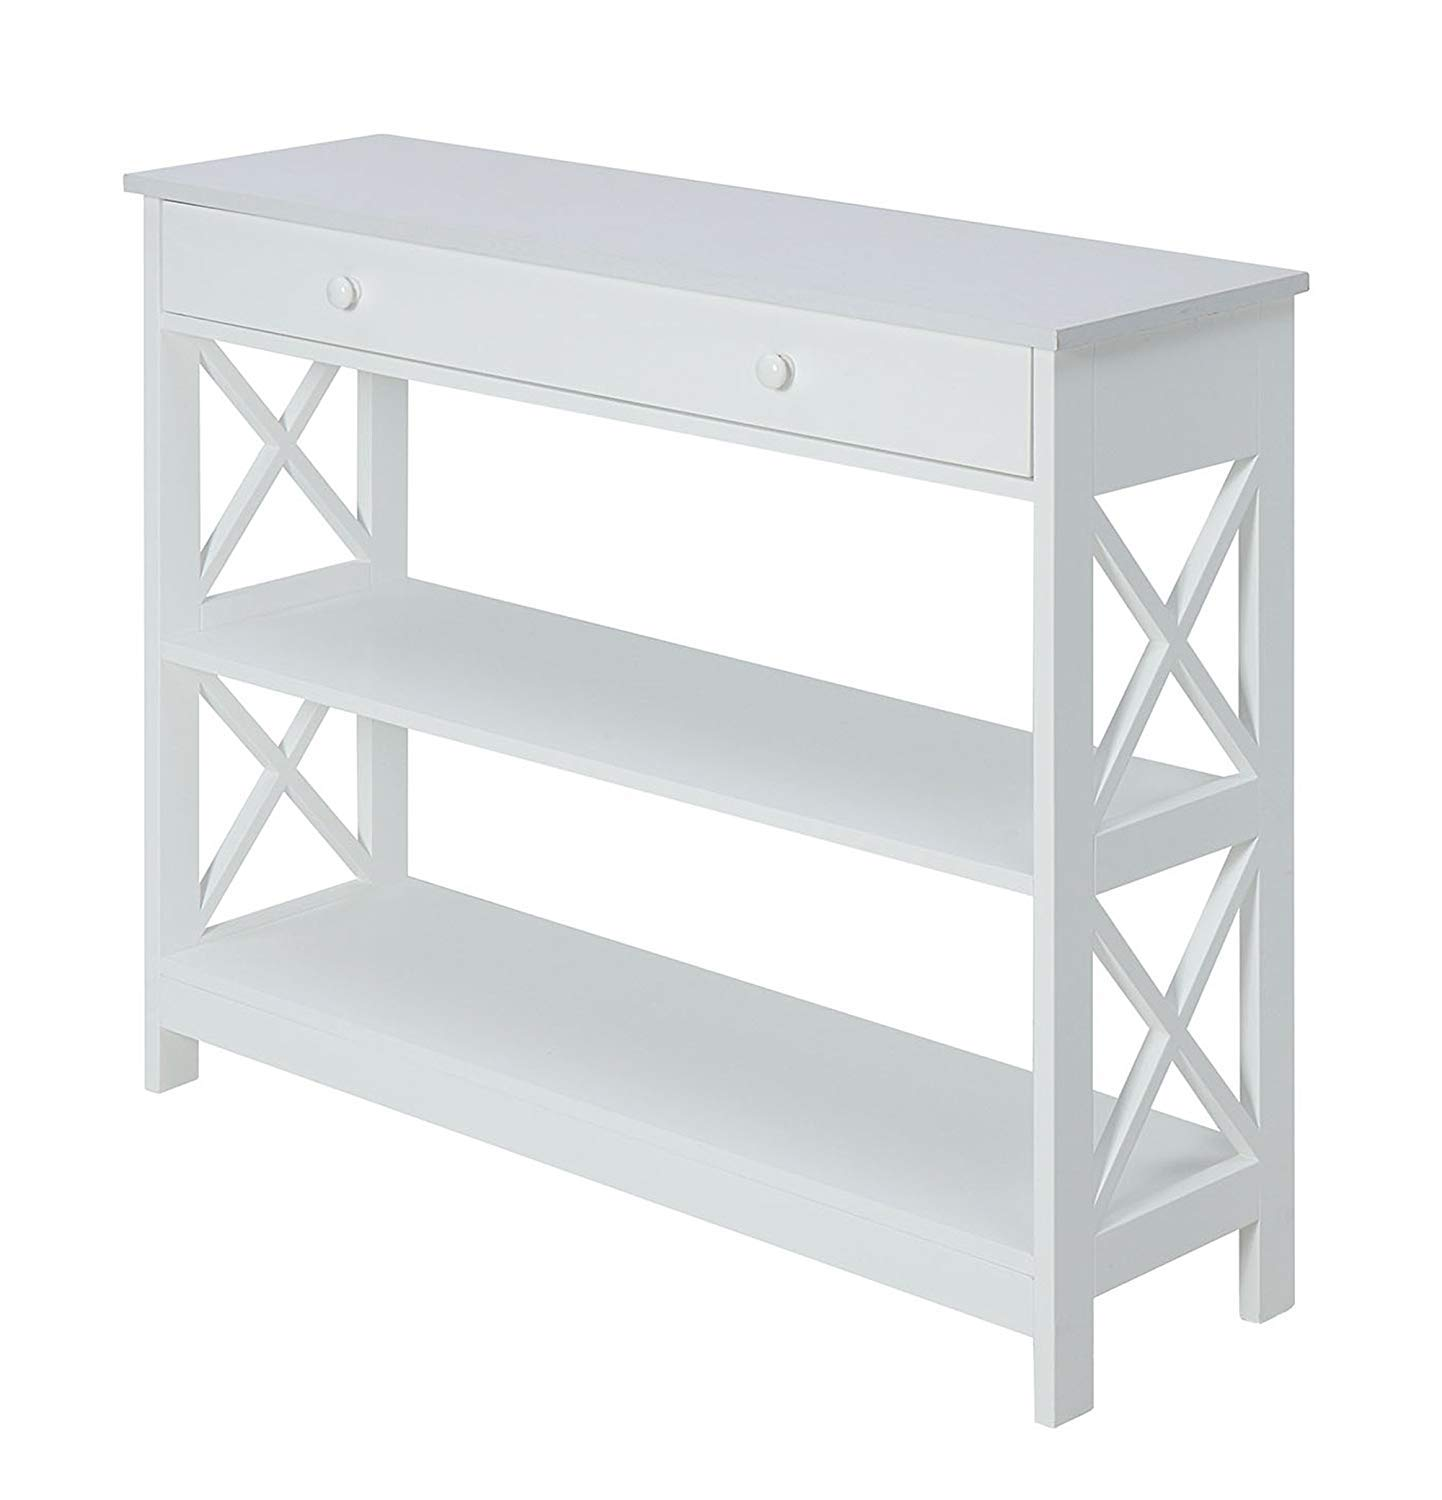 Convenience Concepts Oxford 1-Drawer Console Table, White by Convenience Concepts